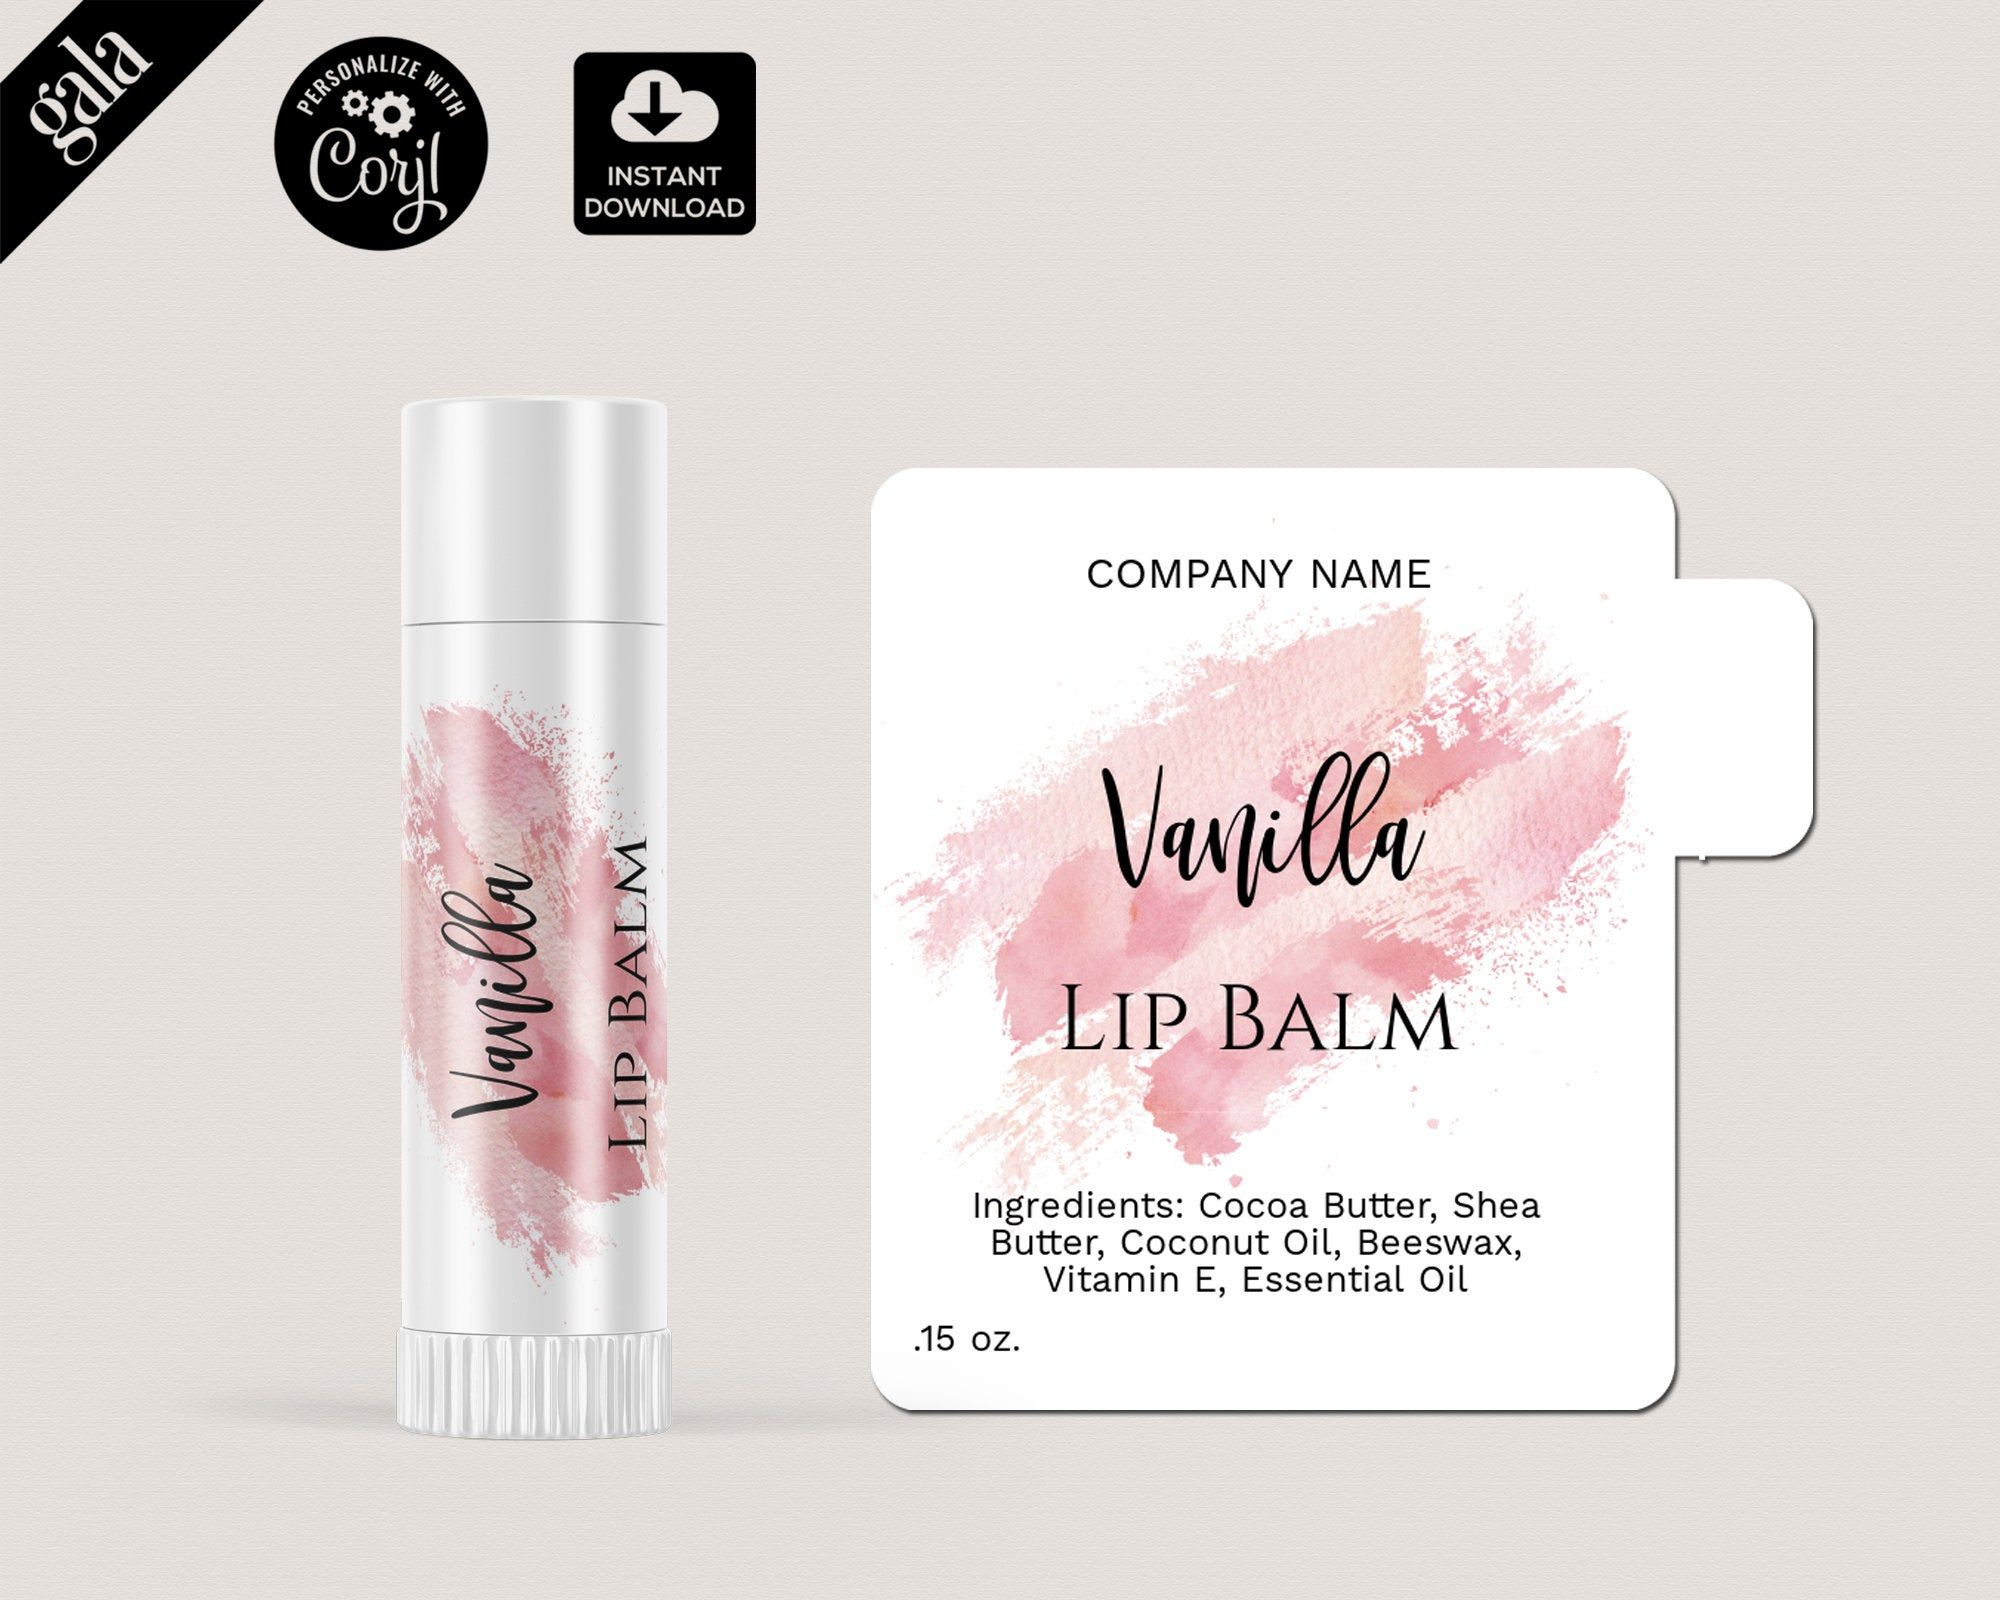 Lip Balm Labels Template Diy Product Label Editable Lip Balm Etsy In 2021 Lip Balm Labels Template Lip Balm Labels The Balm